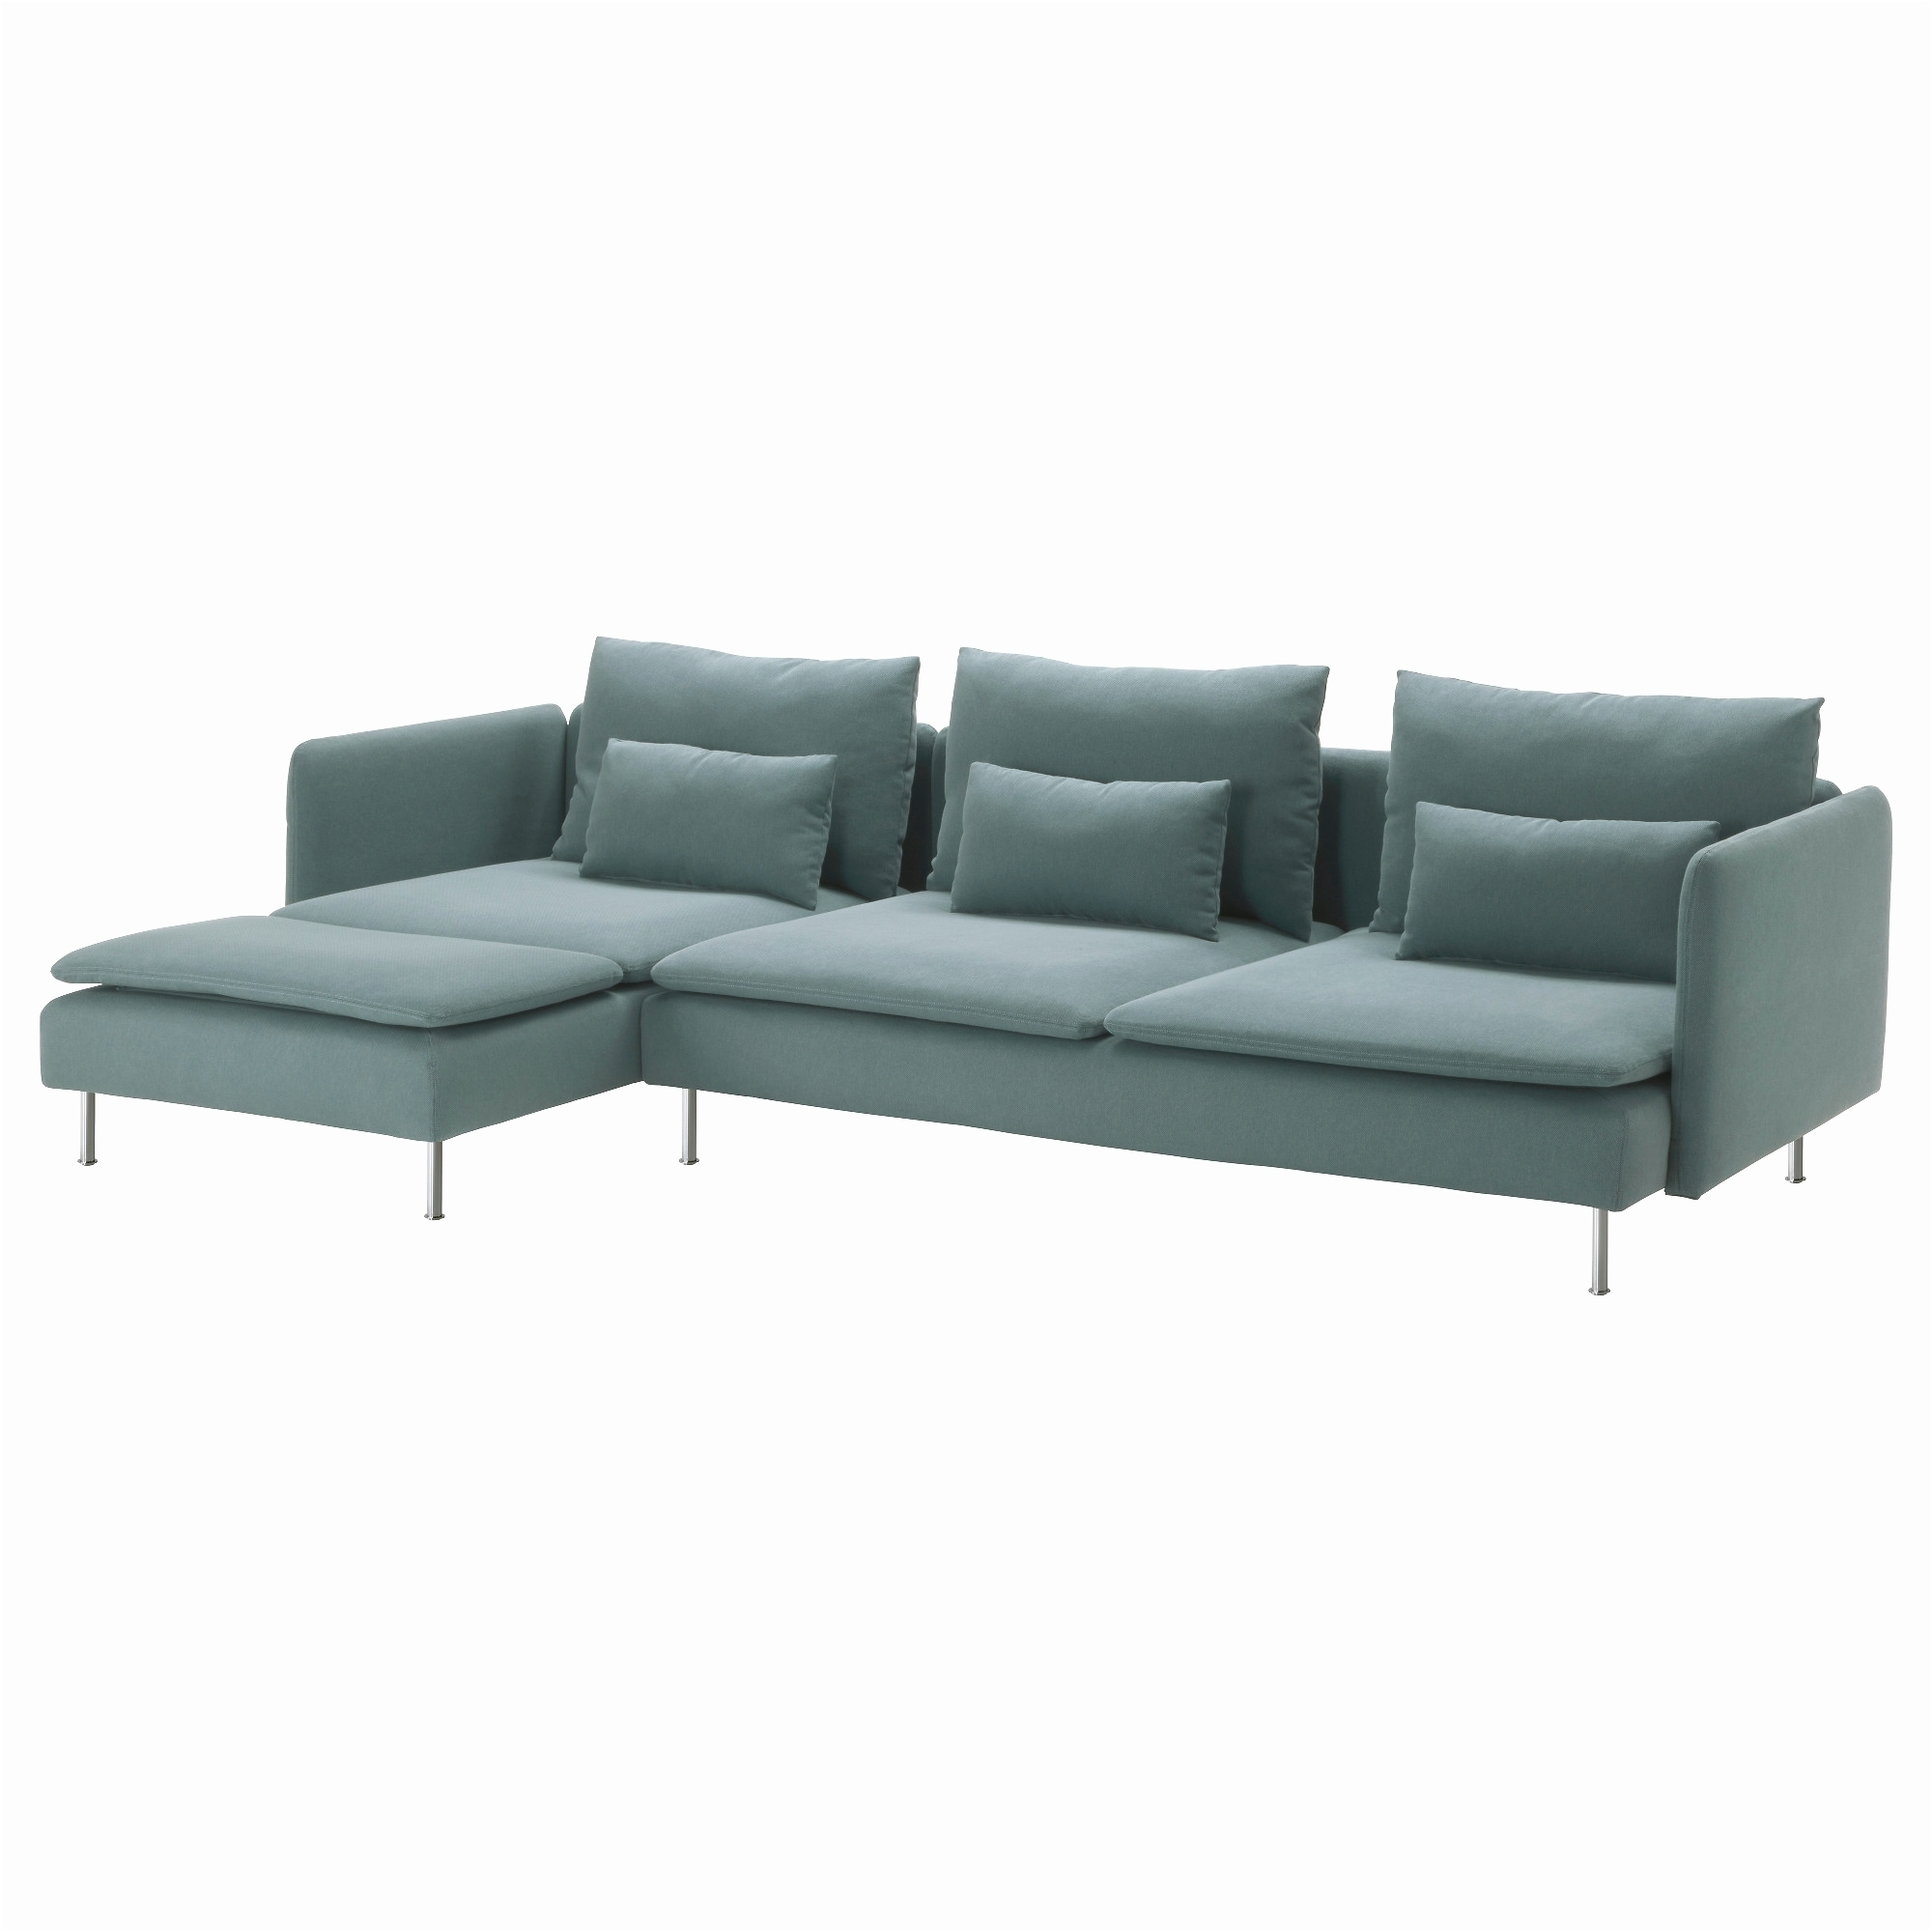 Sofa Pertaining To Kingston Ontario Sectional Sofas (View 13 of 15)